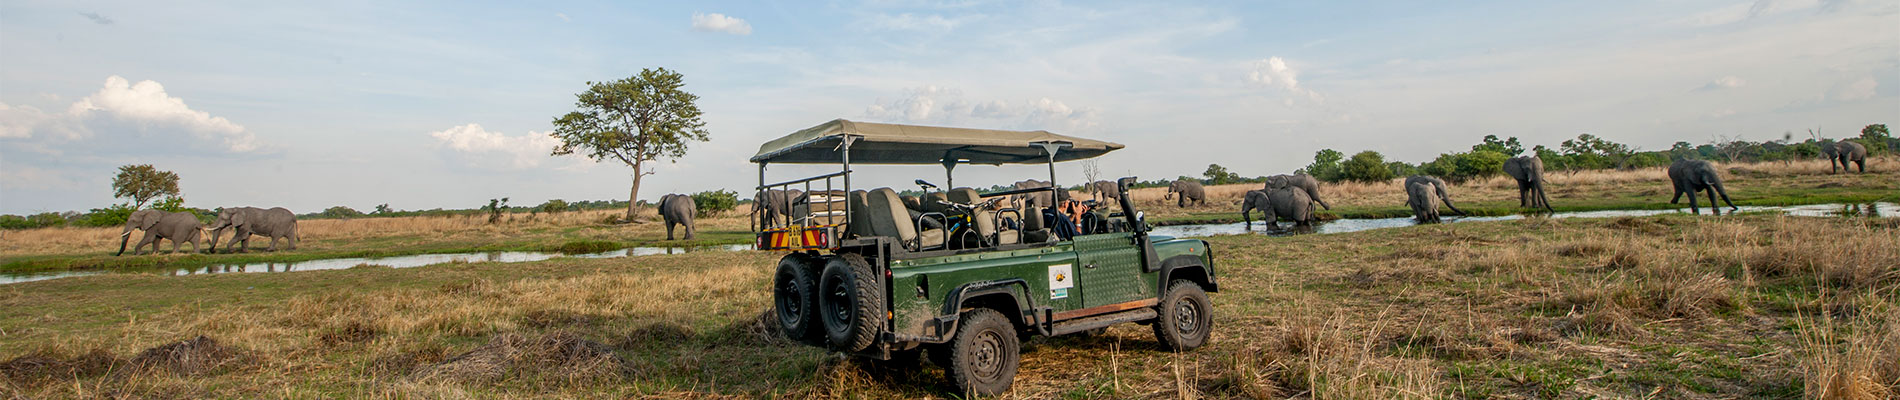 Authentic Delta & Bush - Comfort Level Safari